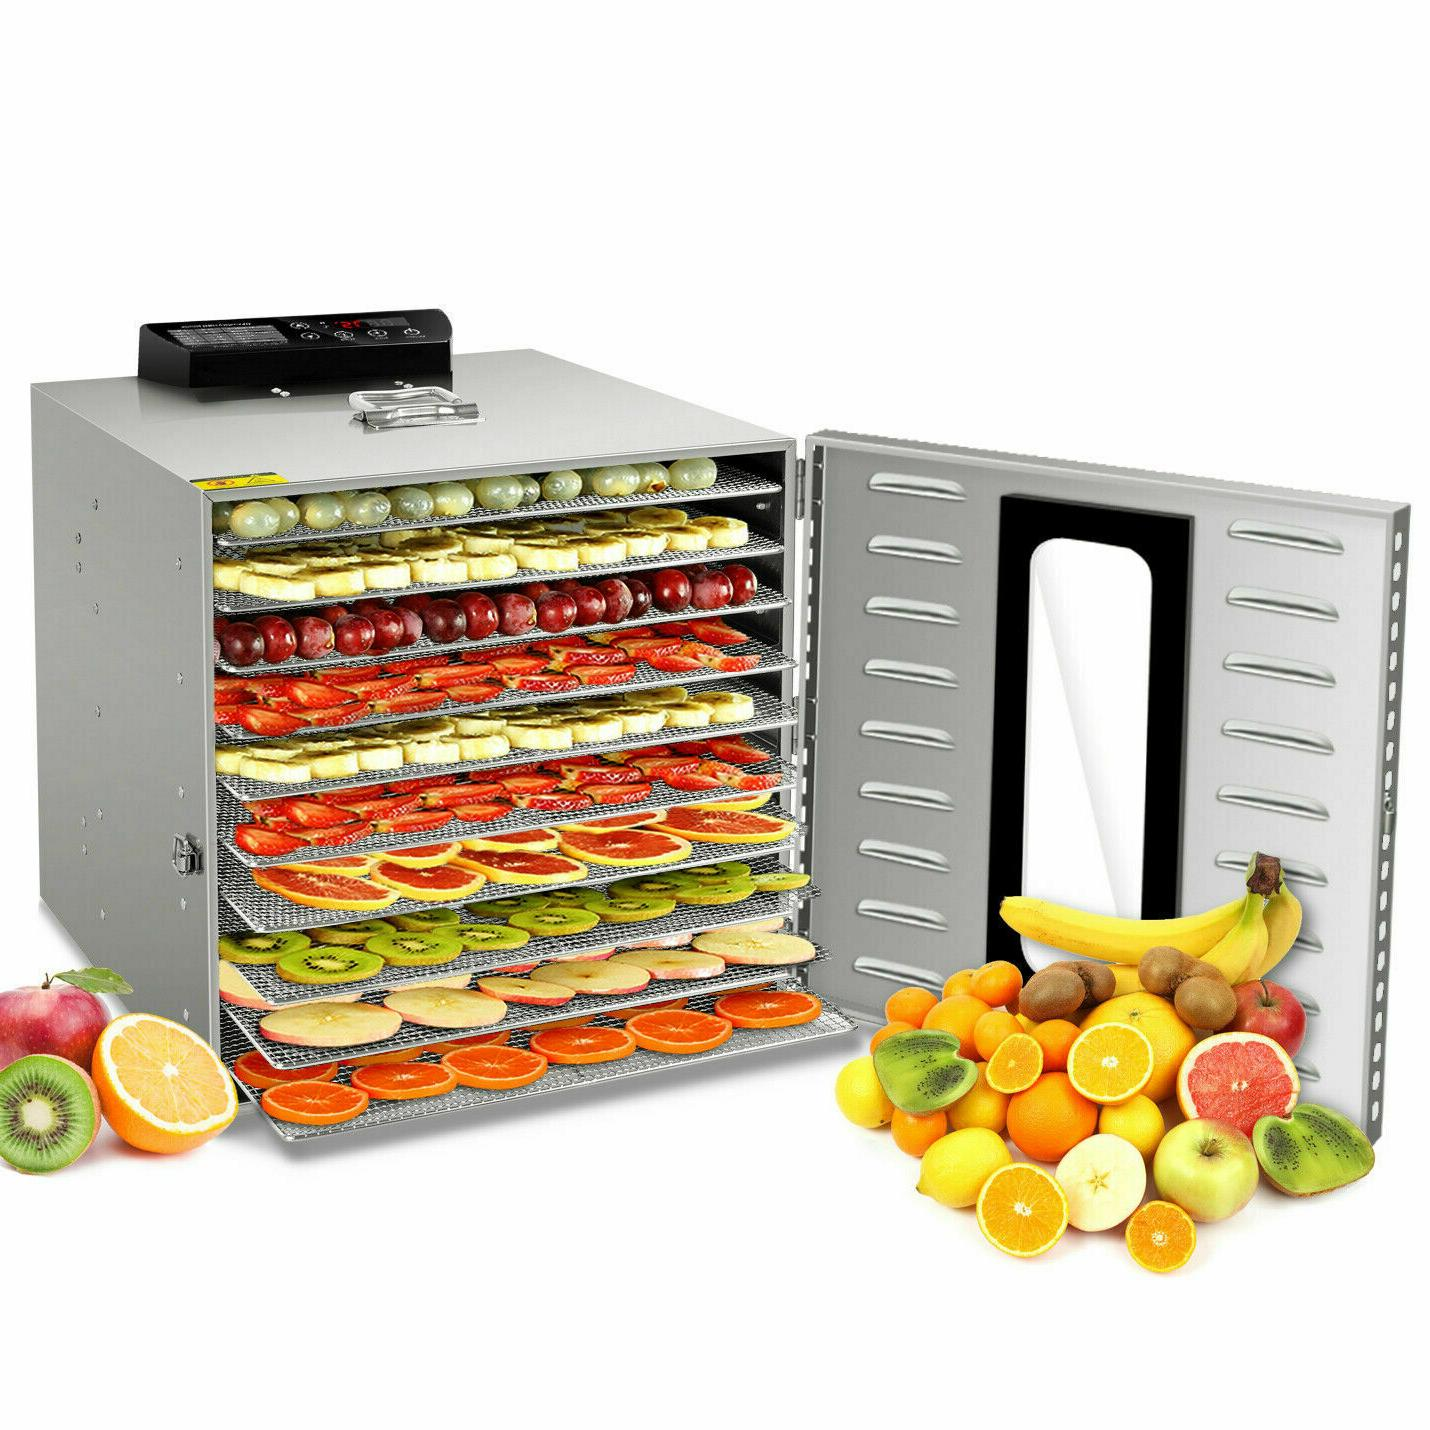 Food Dehydrator 10 Tray Stainless Steel Fruit Jerky Meat Dryer Blower